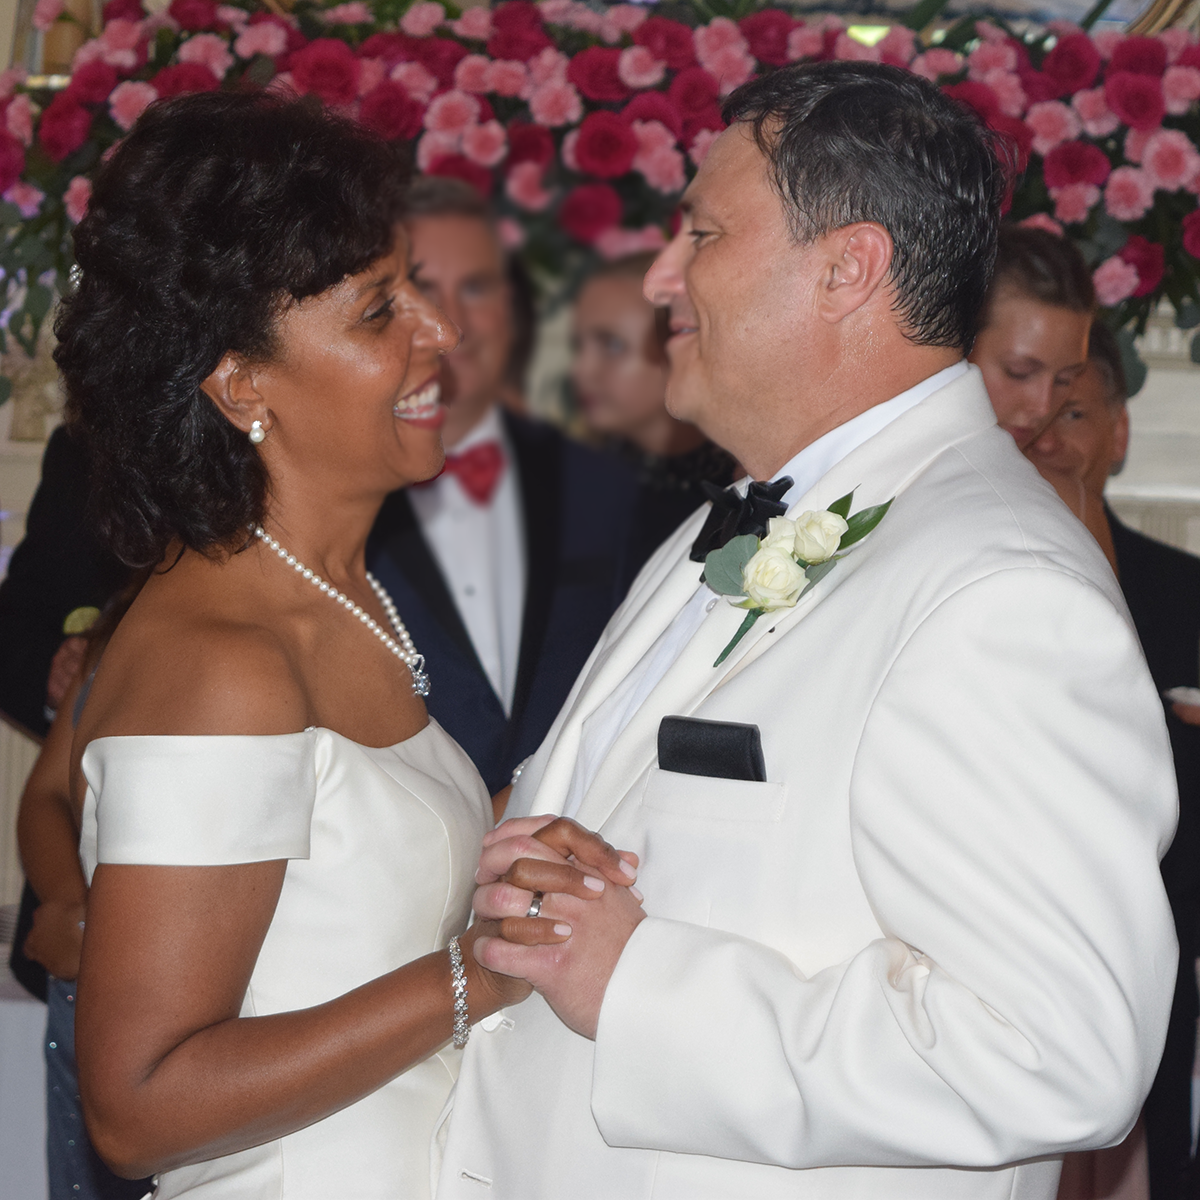 Cydney and Jeffry's wedding at Onondaga Golf & Country Club, Fayetteville, NY. July 2019. Photo by DJ Peter Naughton